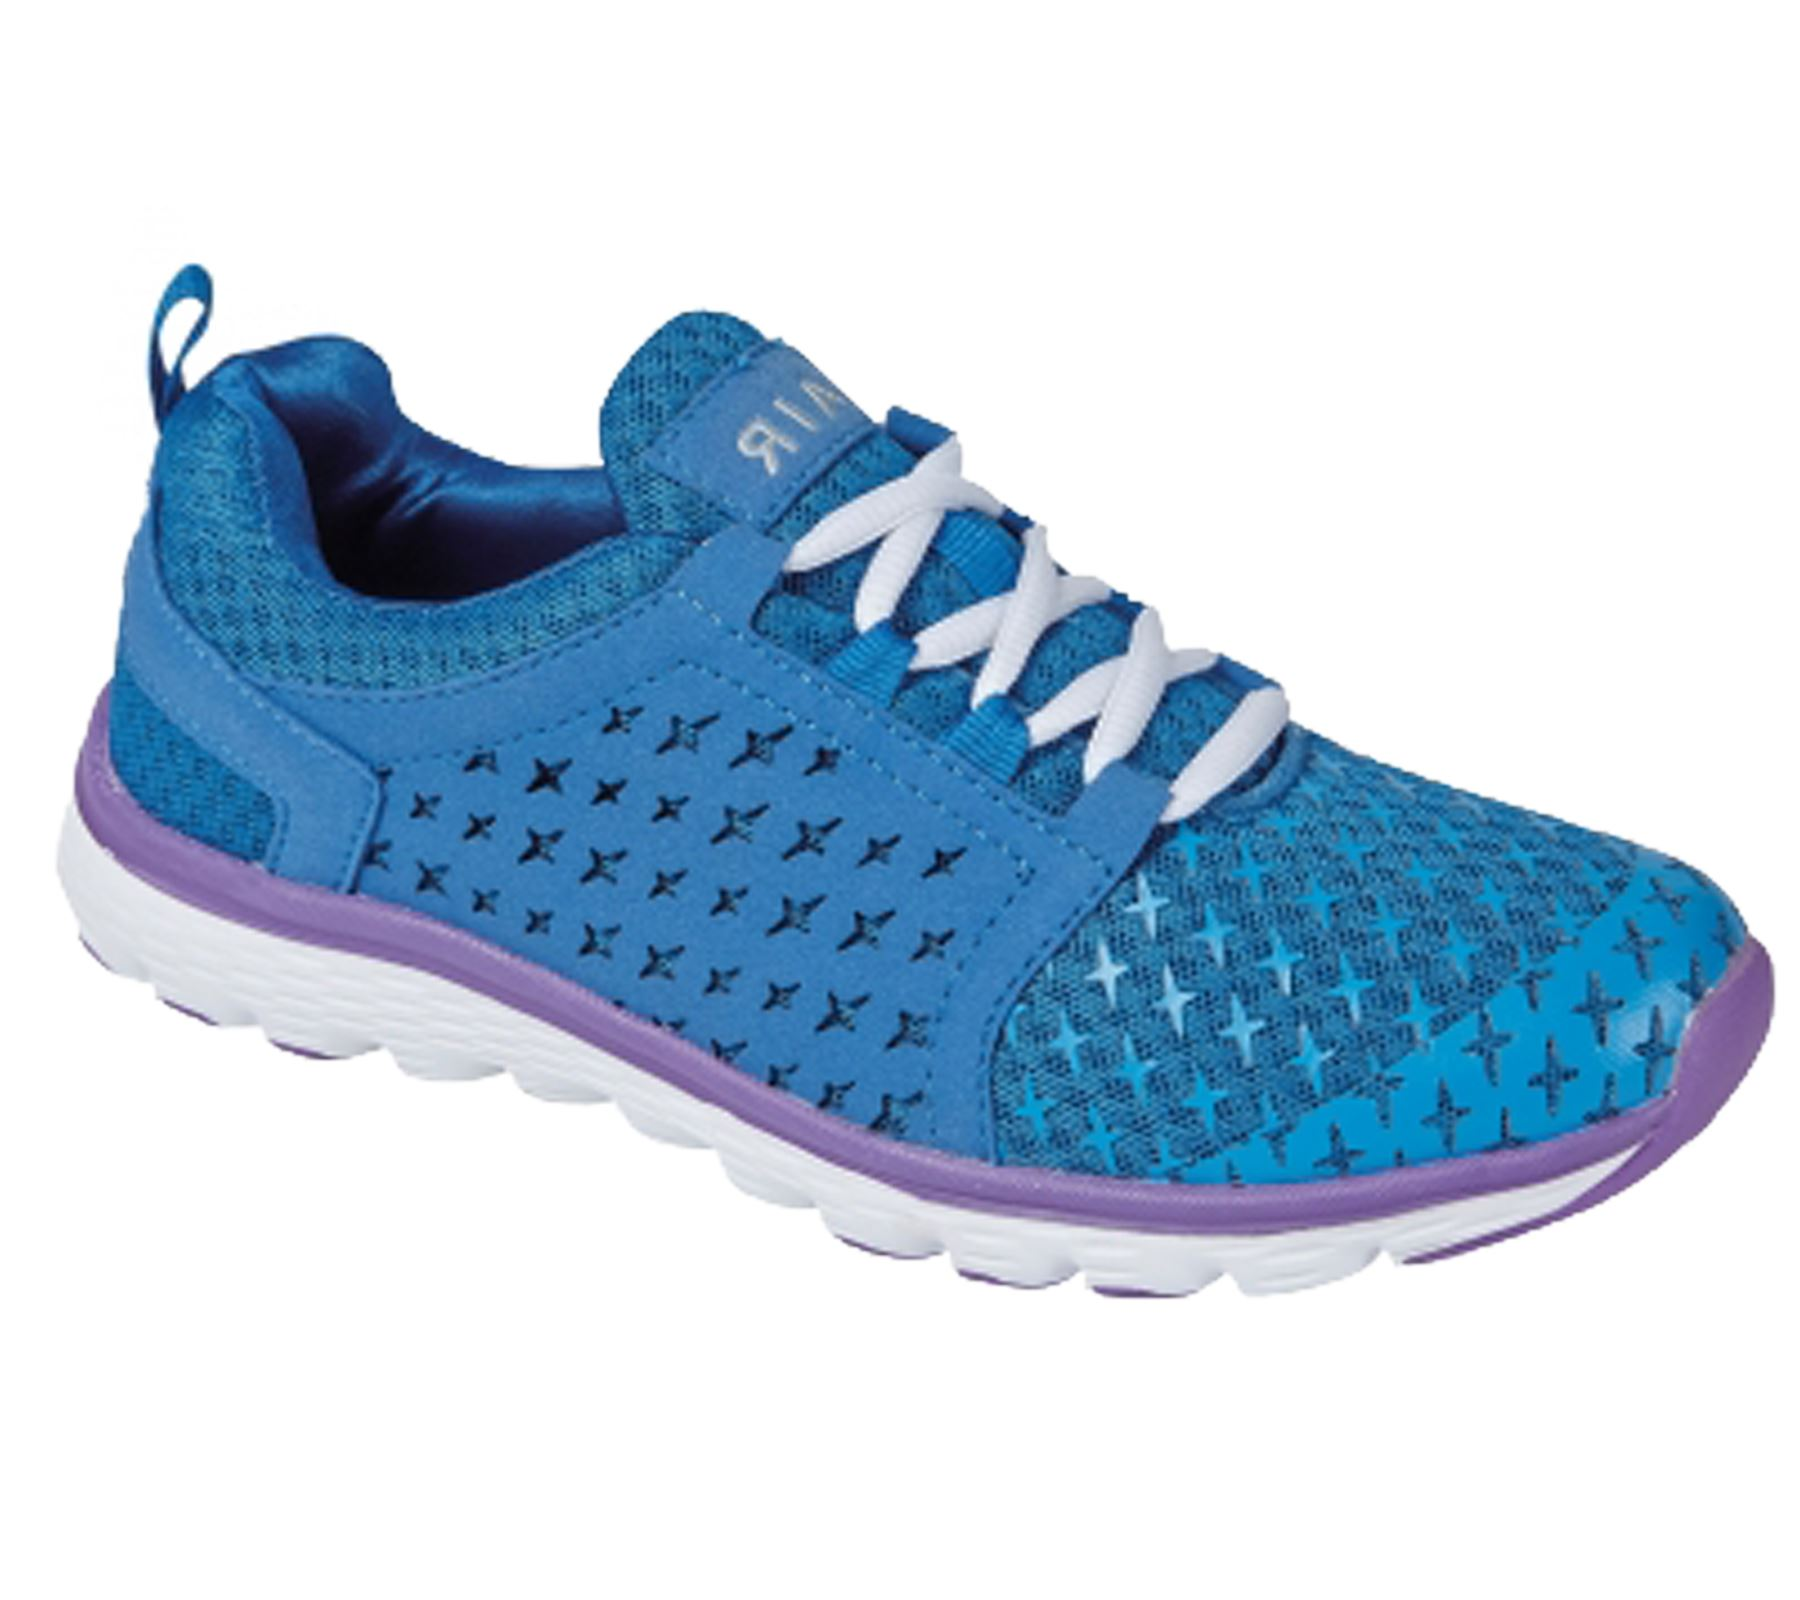 WOMENS RUNNING TRAINERS GIRLS SPORTS WALKING GYM LADIES ...